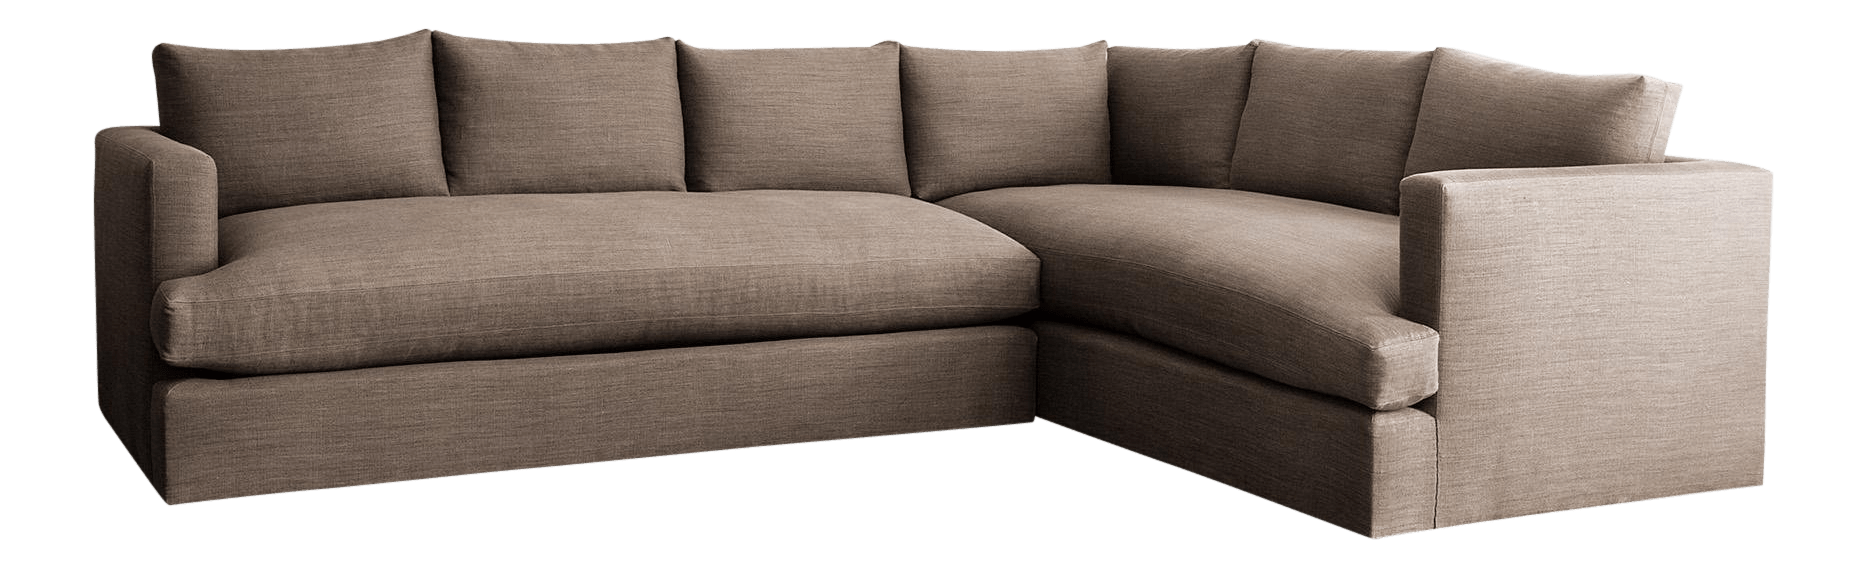 chelsea square sofa really comfortable sofas uk superb sectional decaso for sale